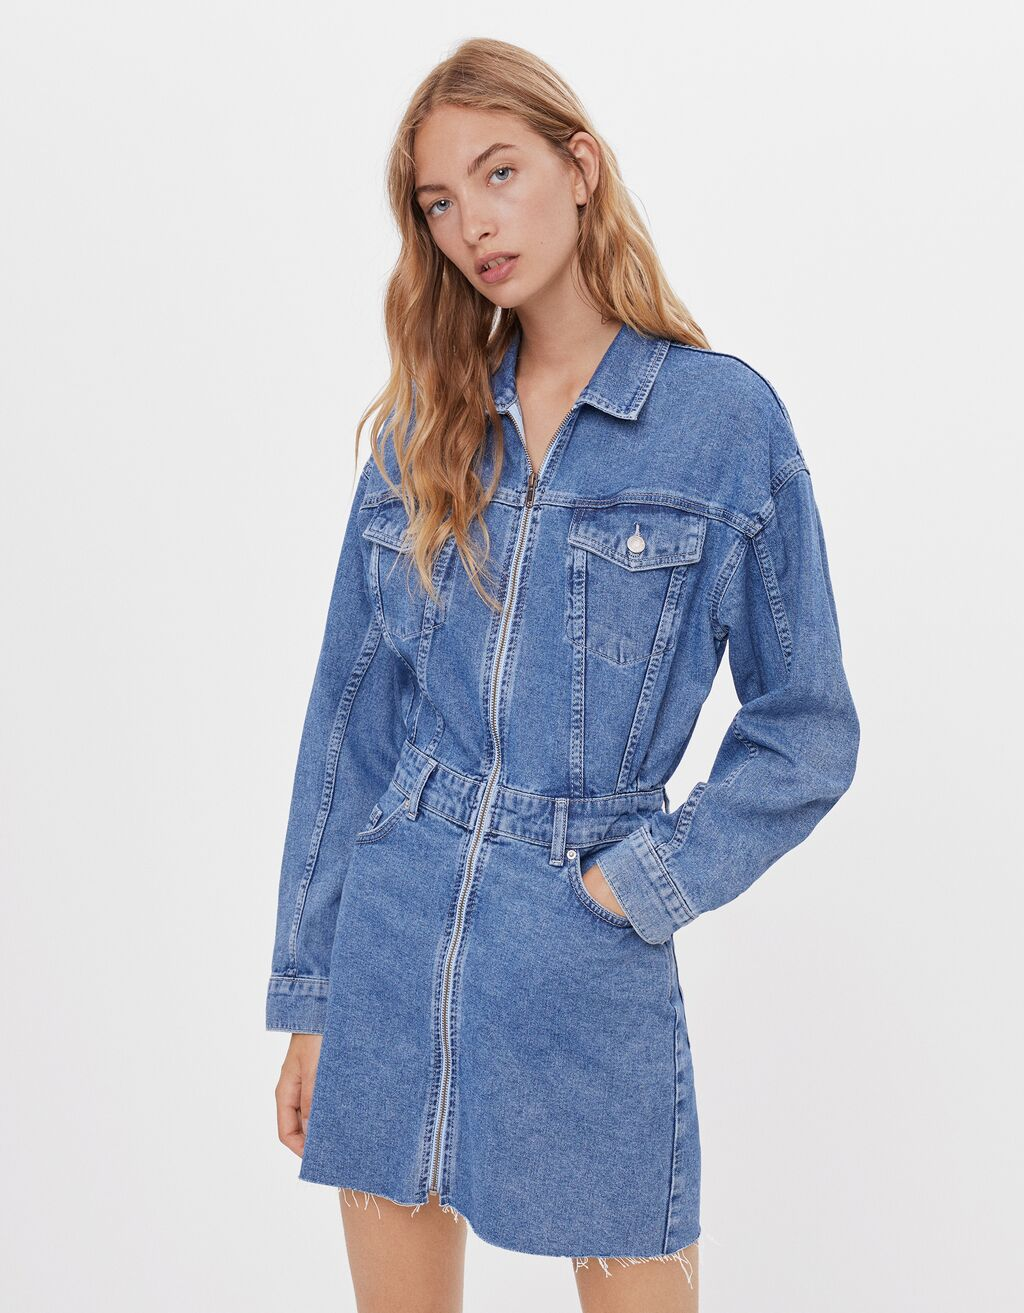 Robe denim zippée